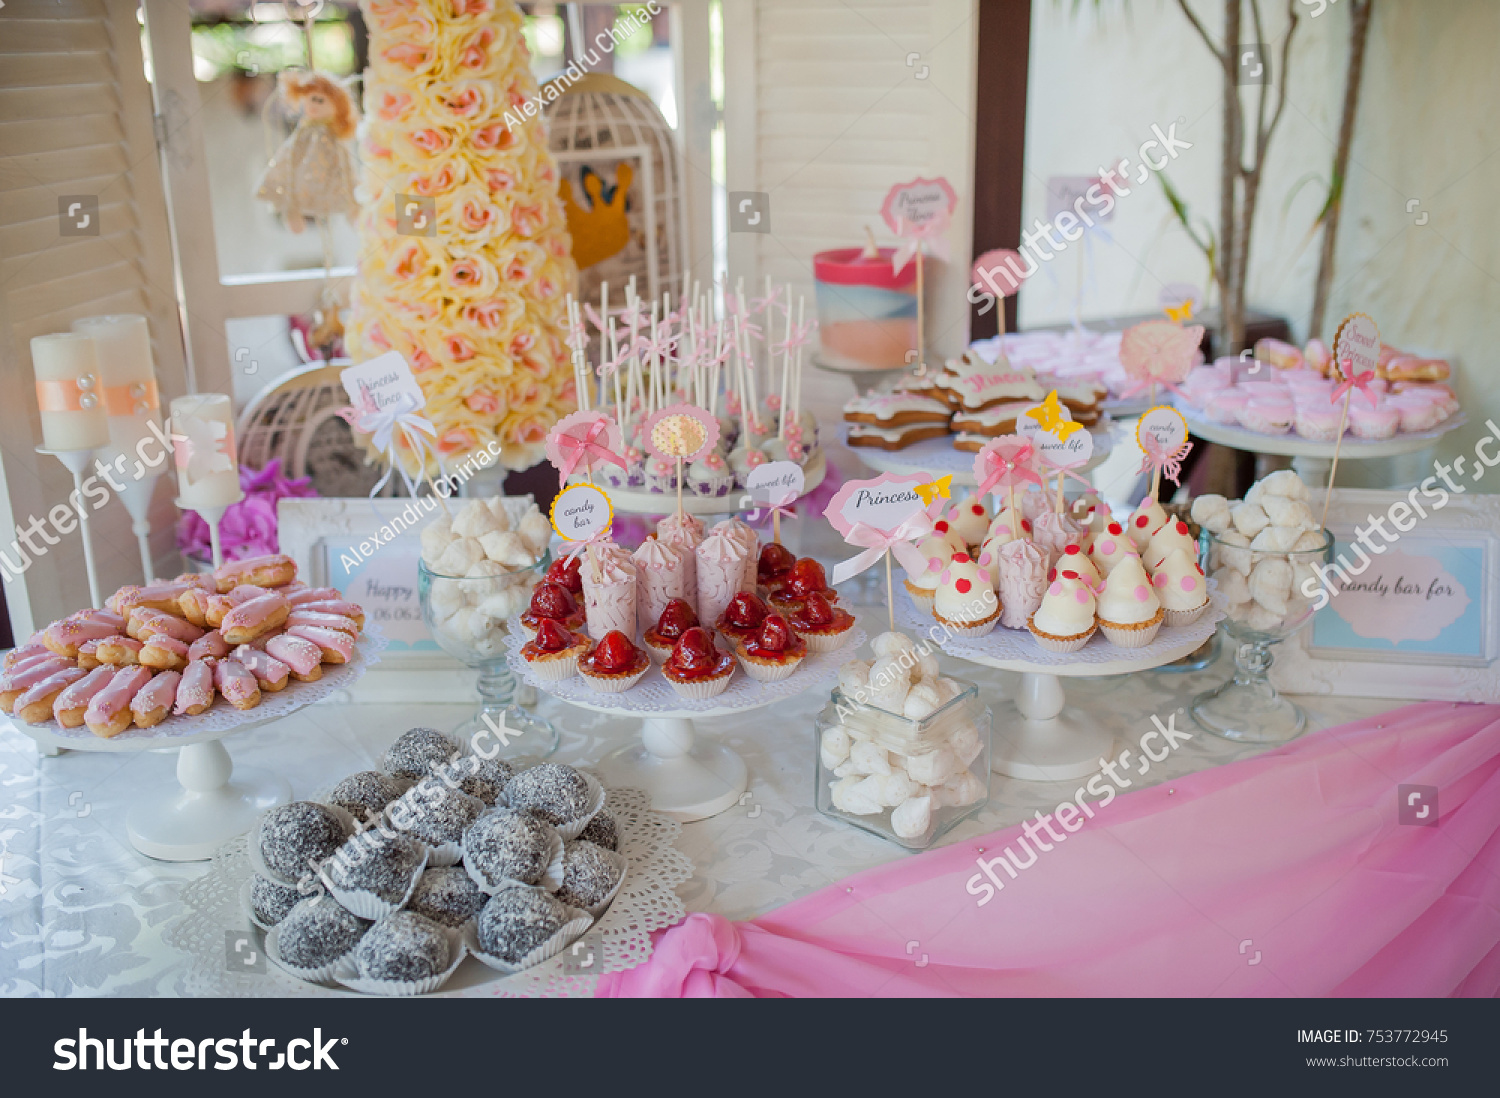 Buffet Of Sweets At The Wedding Table Ez Canvas